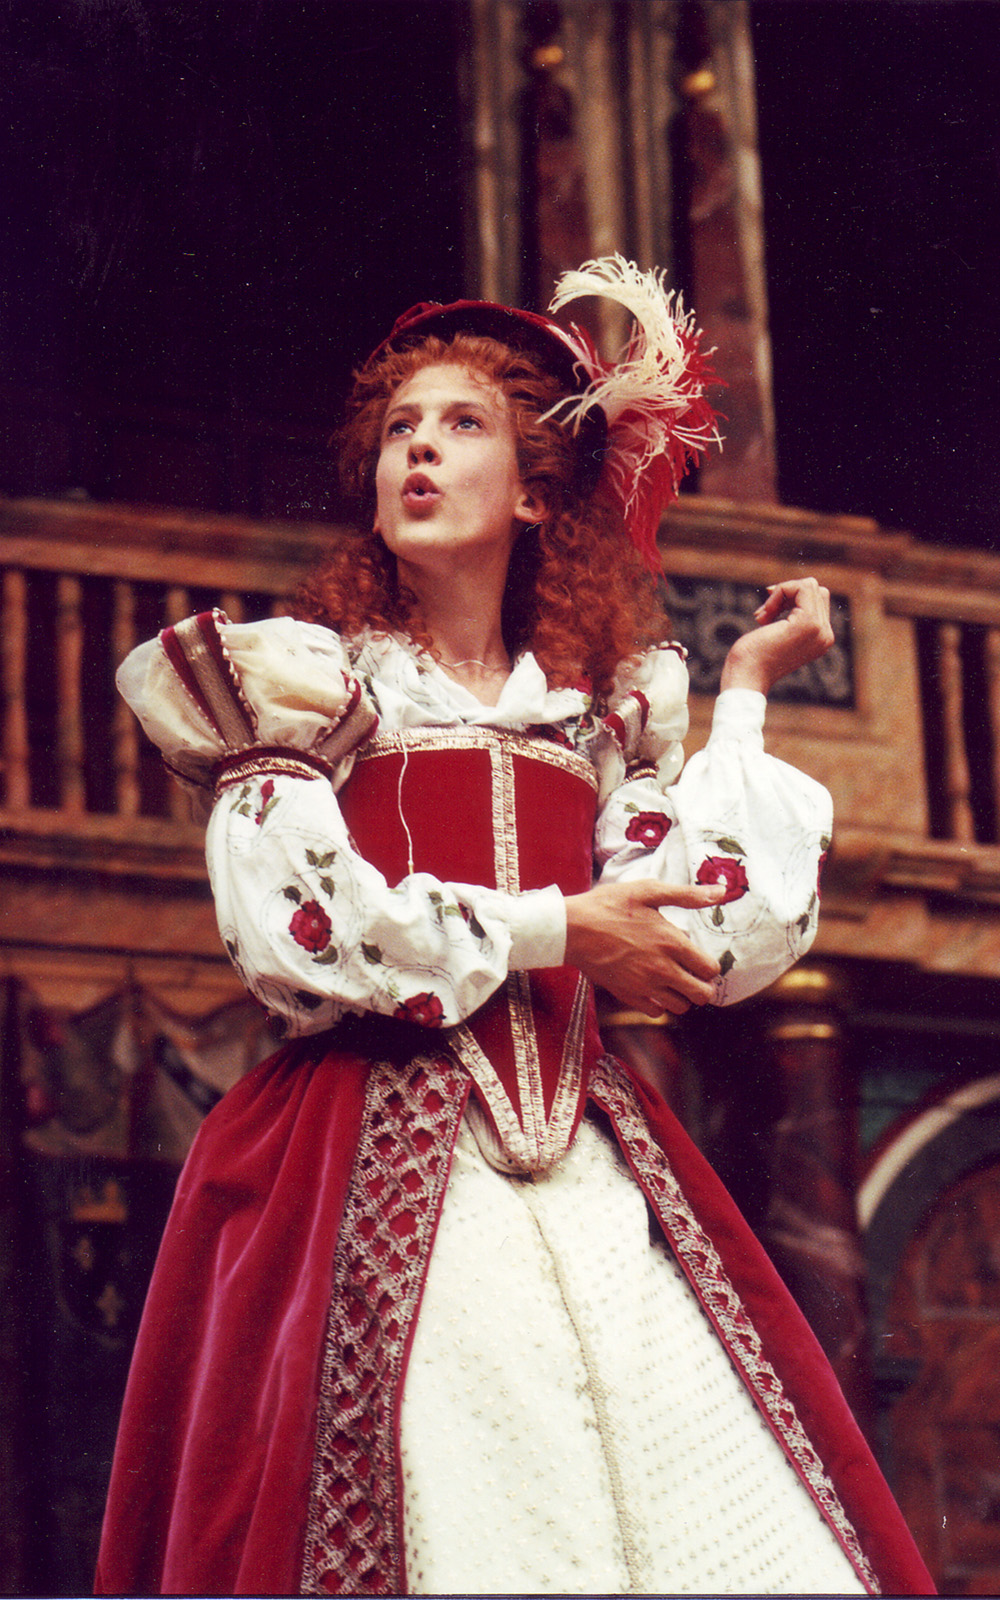 An actor wears a bright red traditional Elizabethan dress, with corset, puffed sleeves, and full skirt.